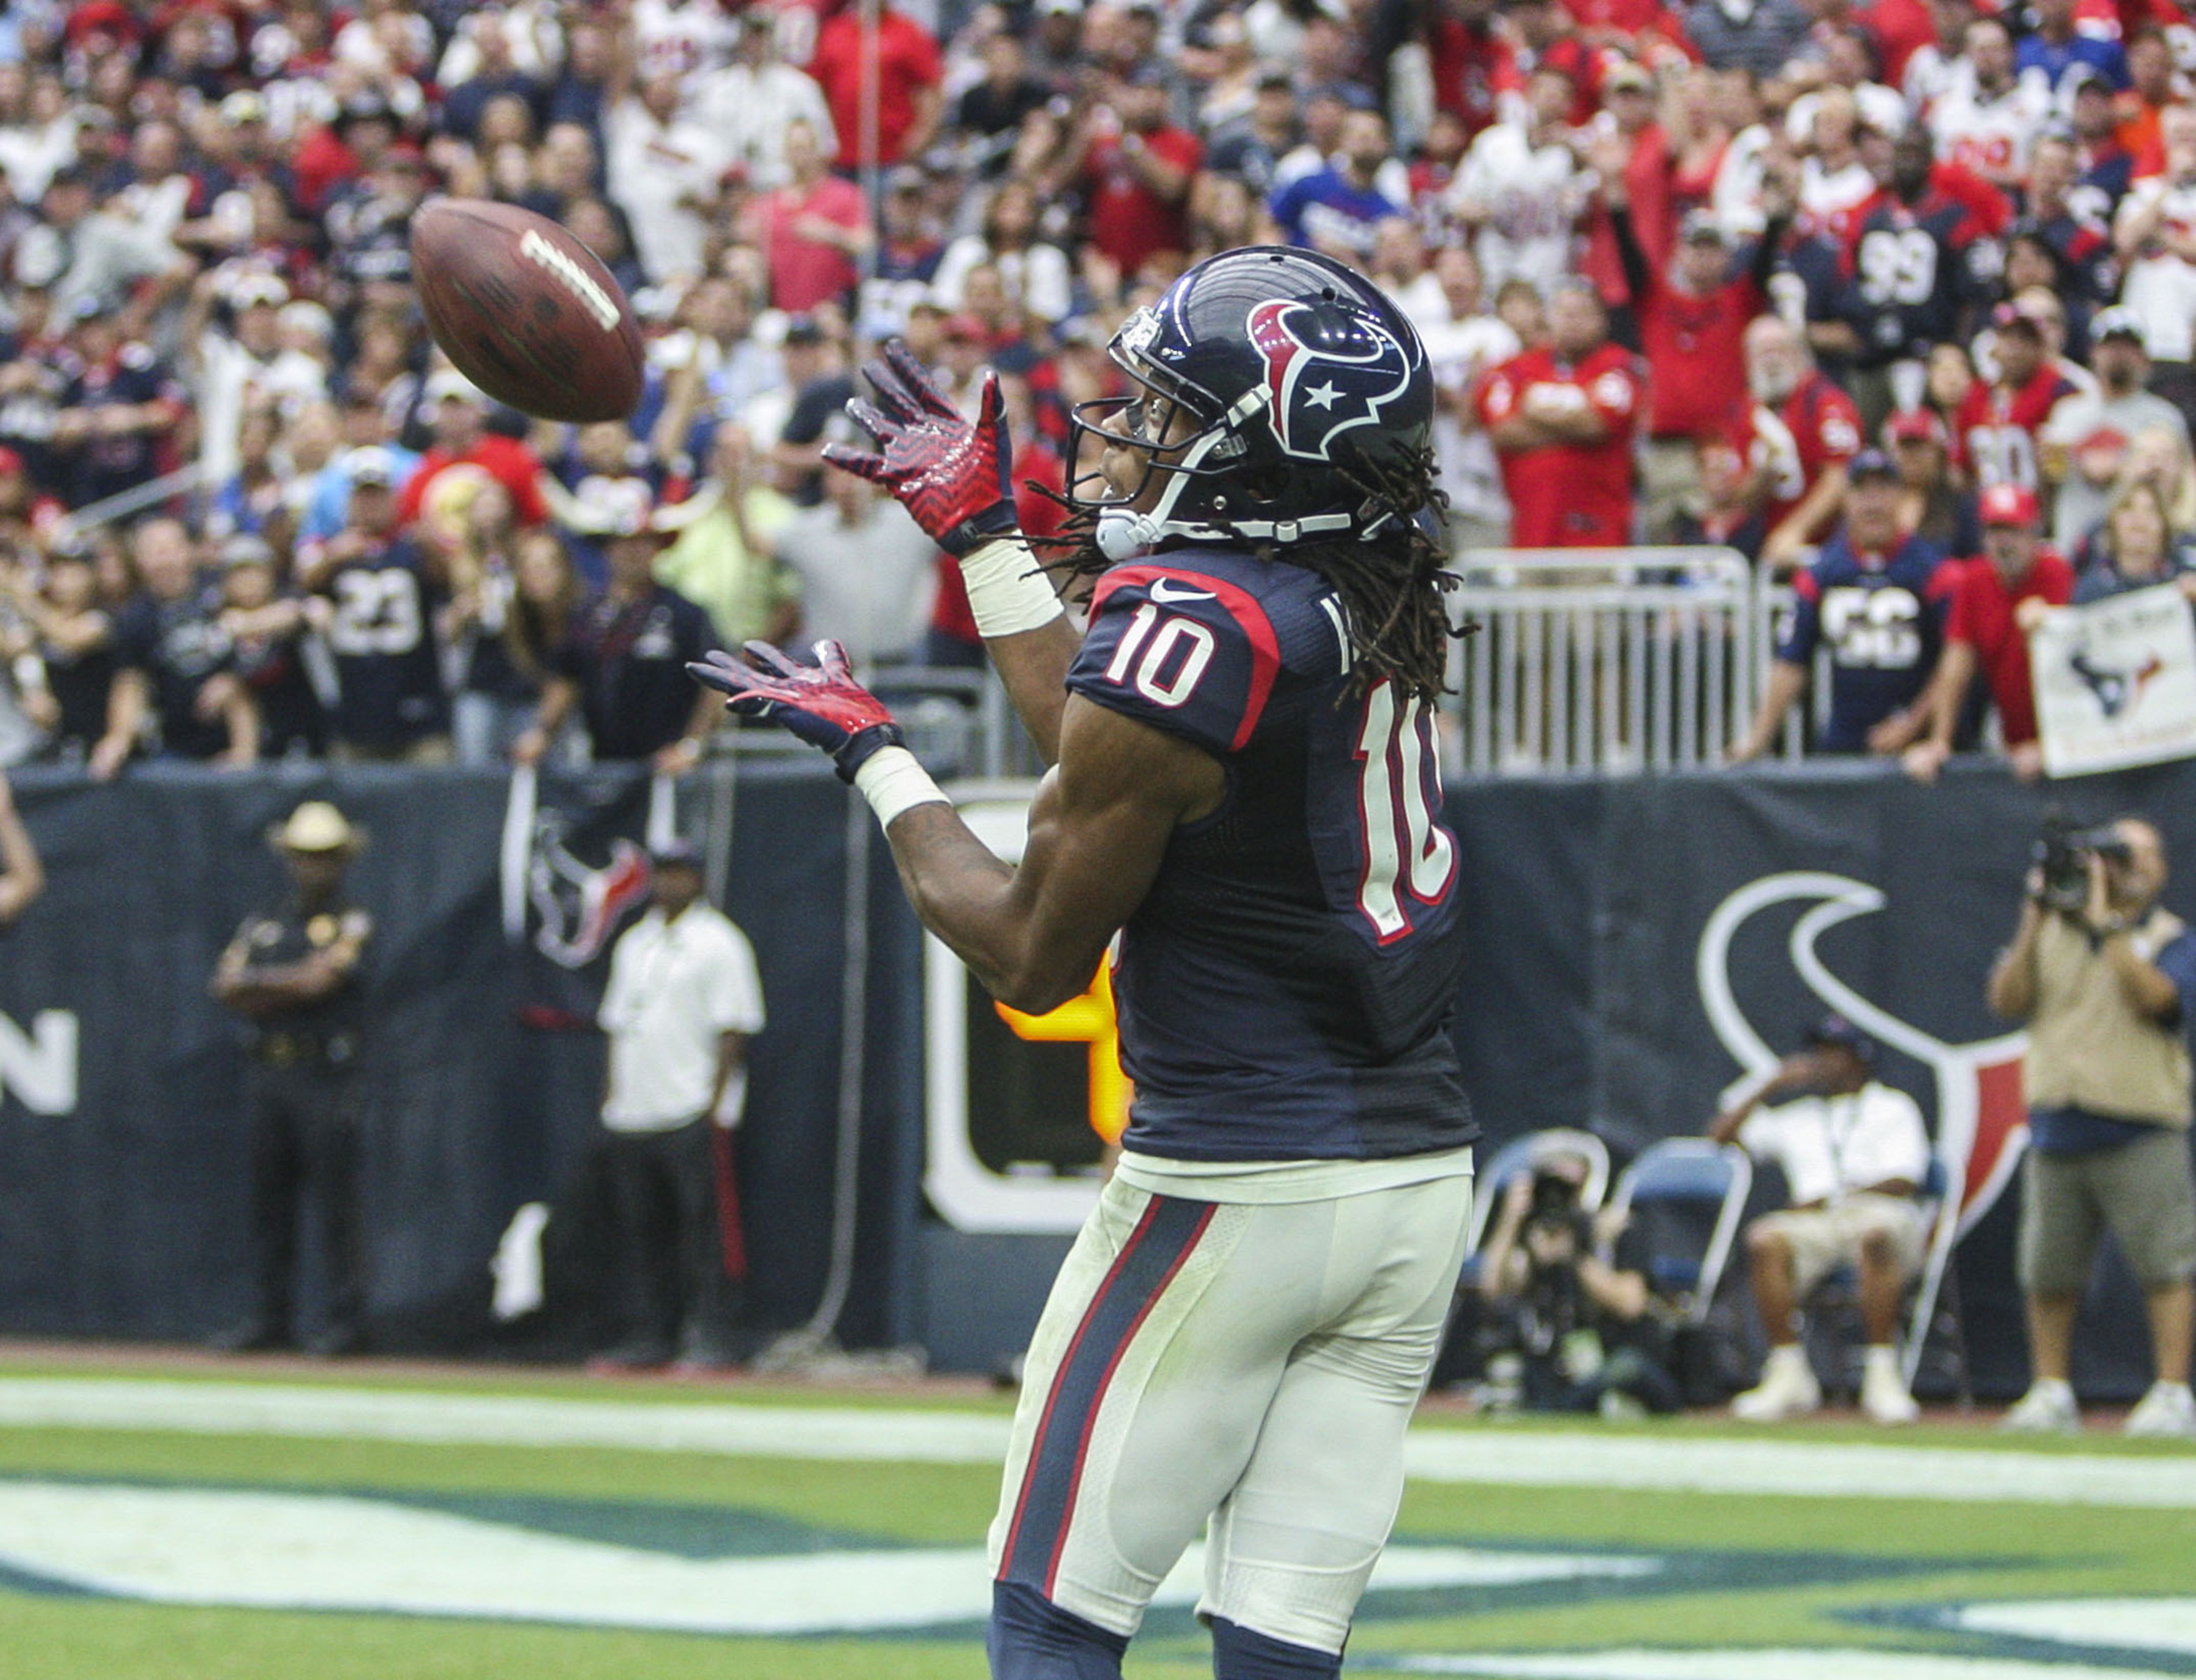 Find that end zone again, Nuk.